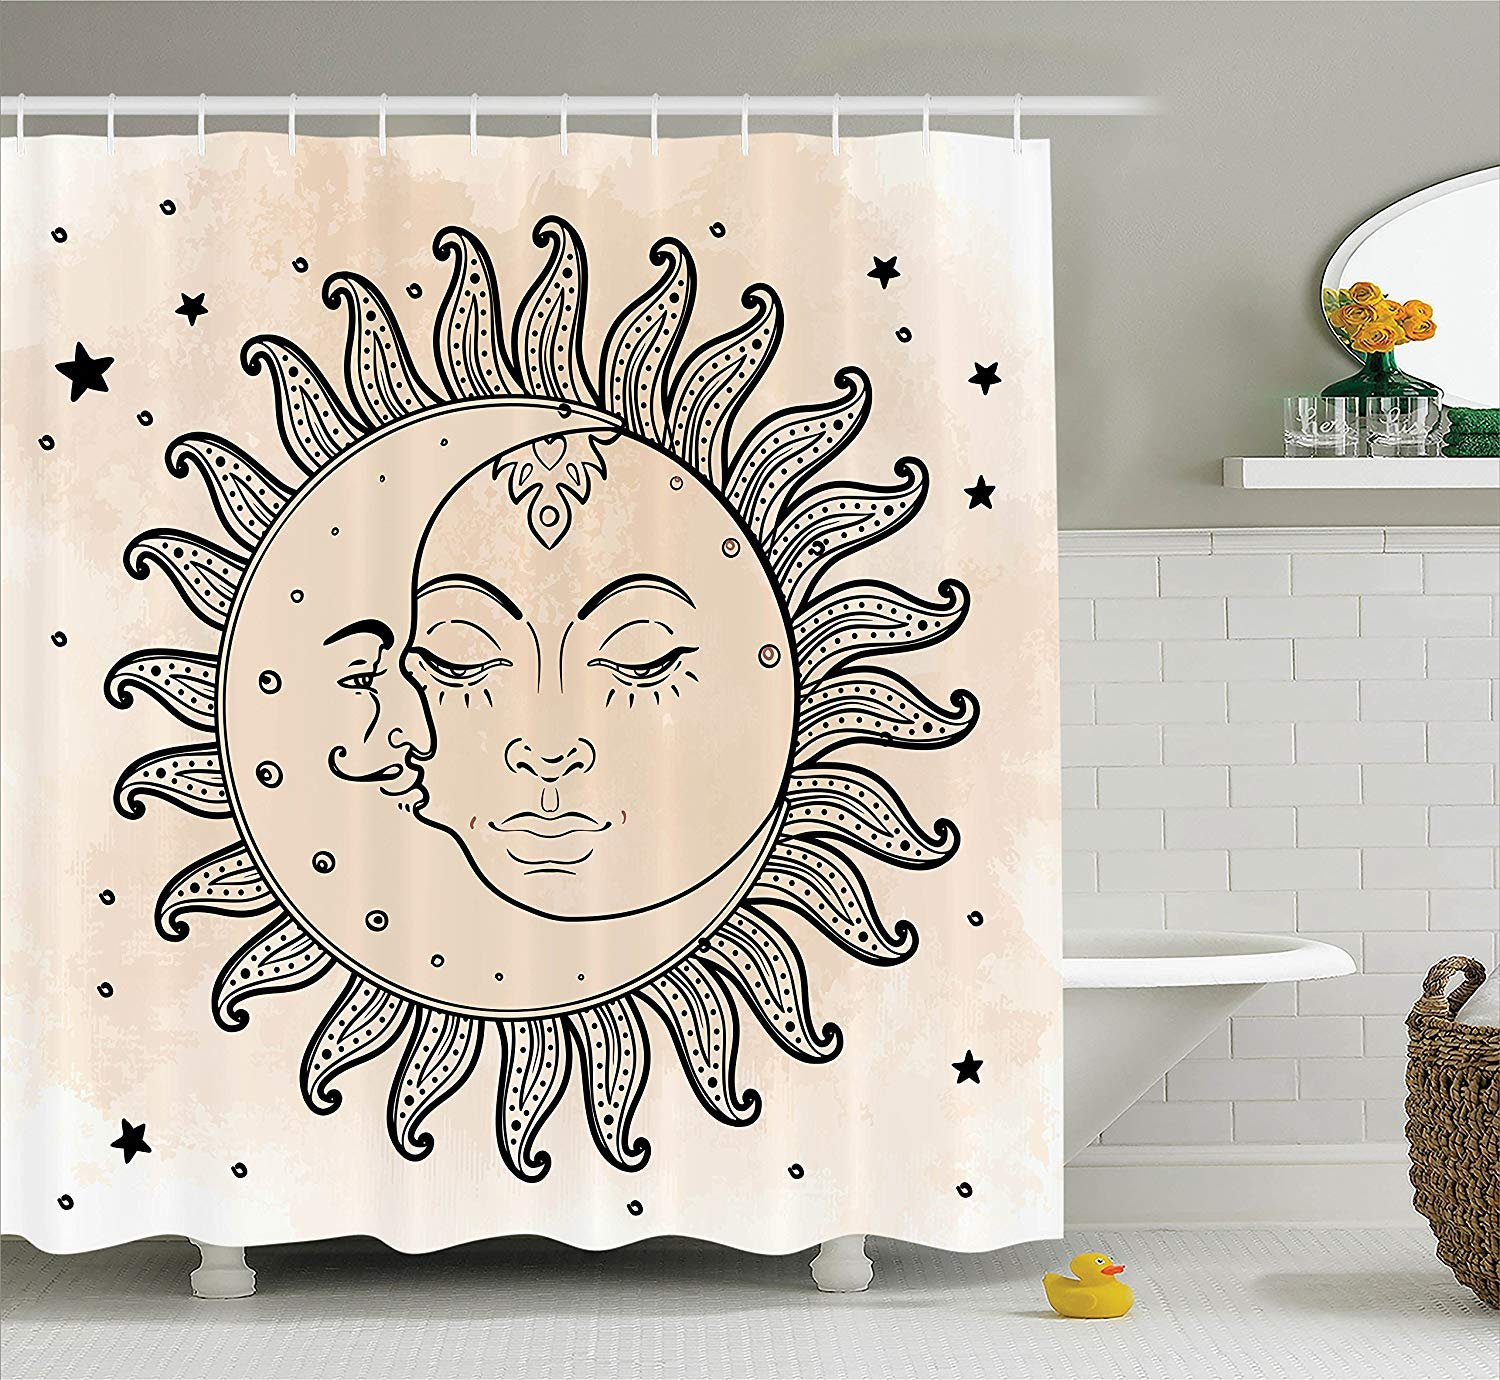 Custom Made Sketchy Shower Curtain, Sun and Moon Celestial Figures Composition Day`s Cycle Mystical Inspiration, Fabric Polyester Waterproof 12 Stainless Steel Hook, 72 x 72 Inches Charcoal Tan